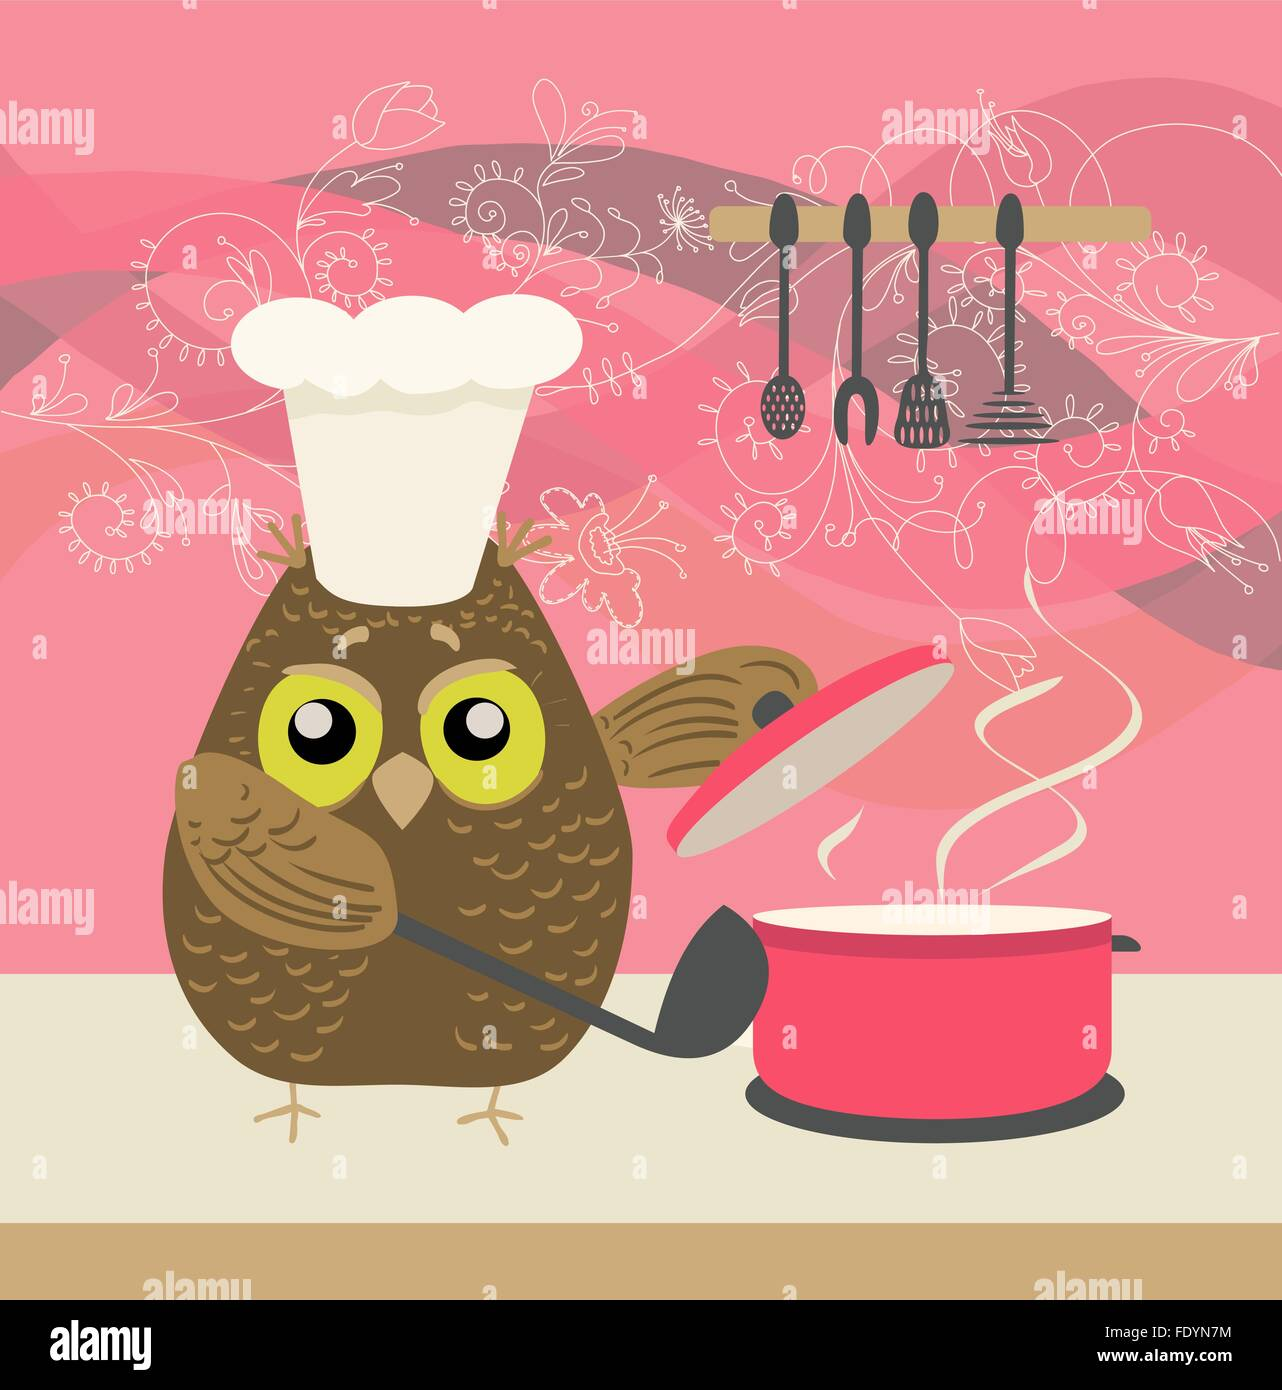 Cute Owl With A Bawl Cooking In The Kitchen On Decorative